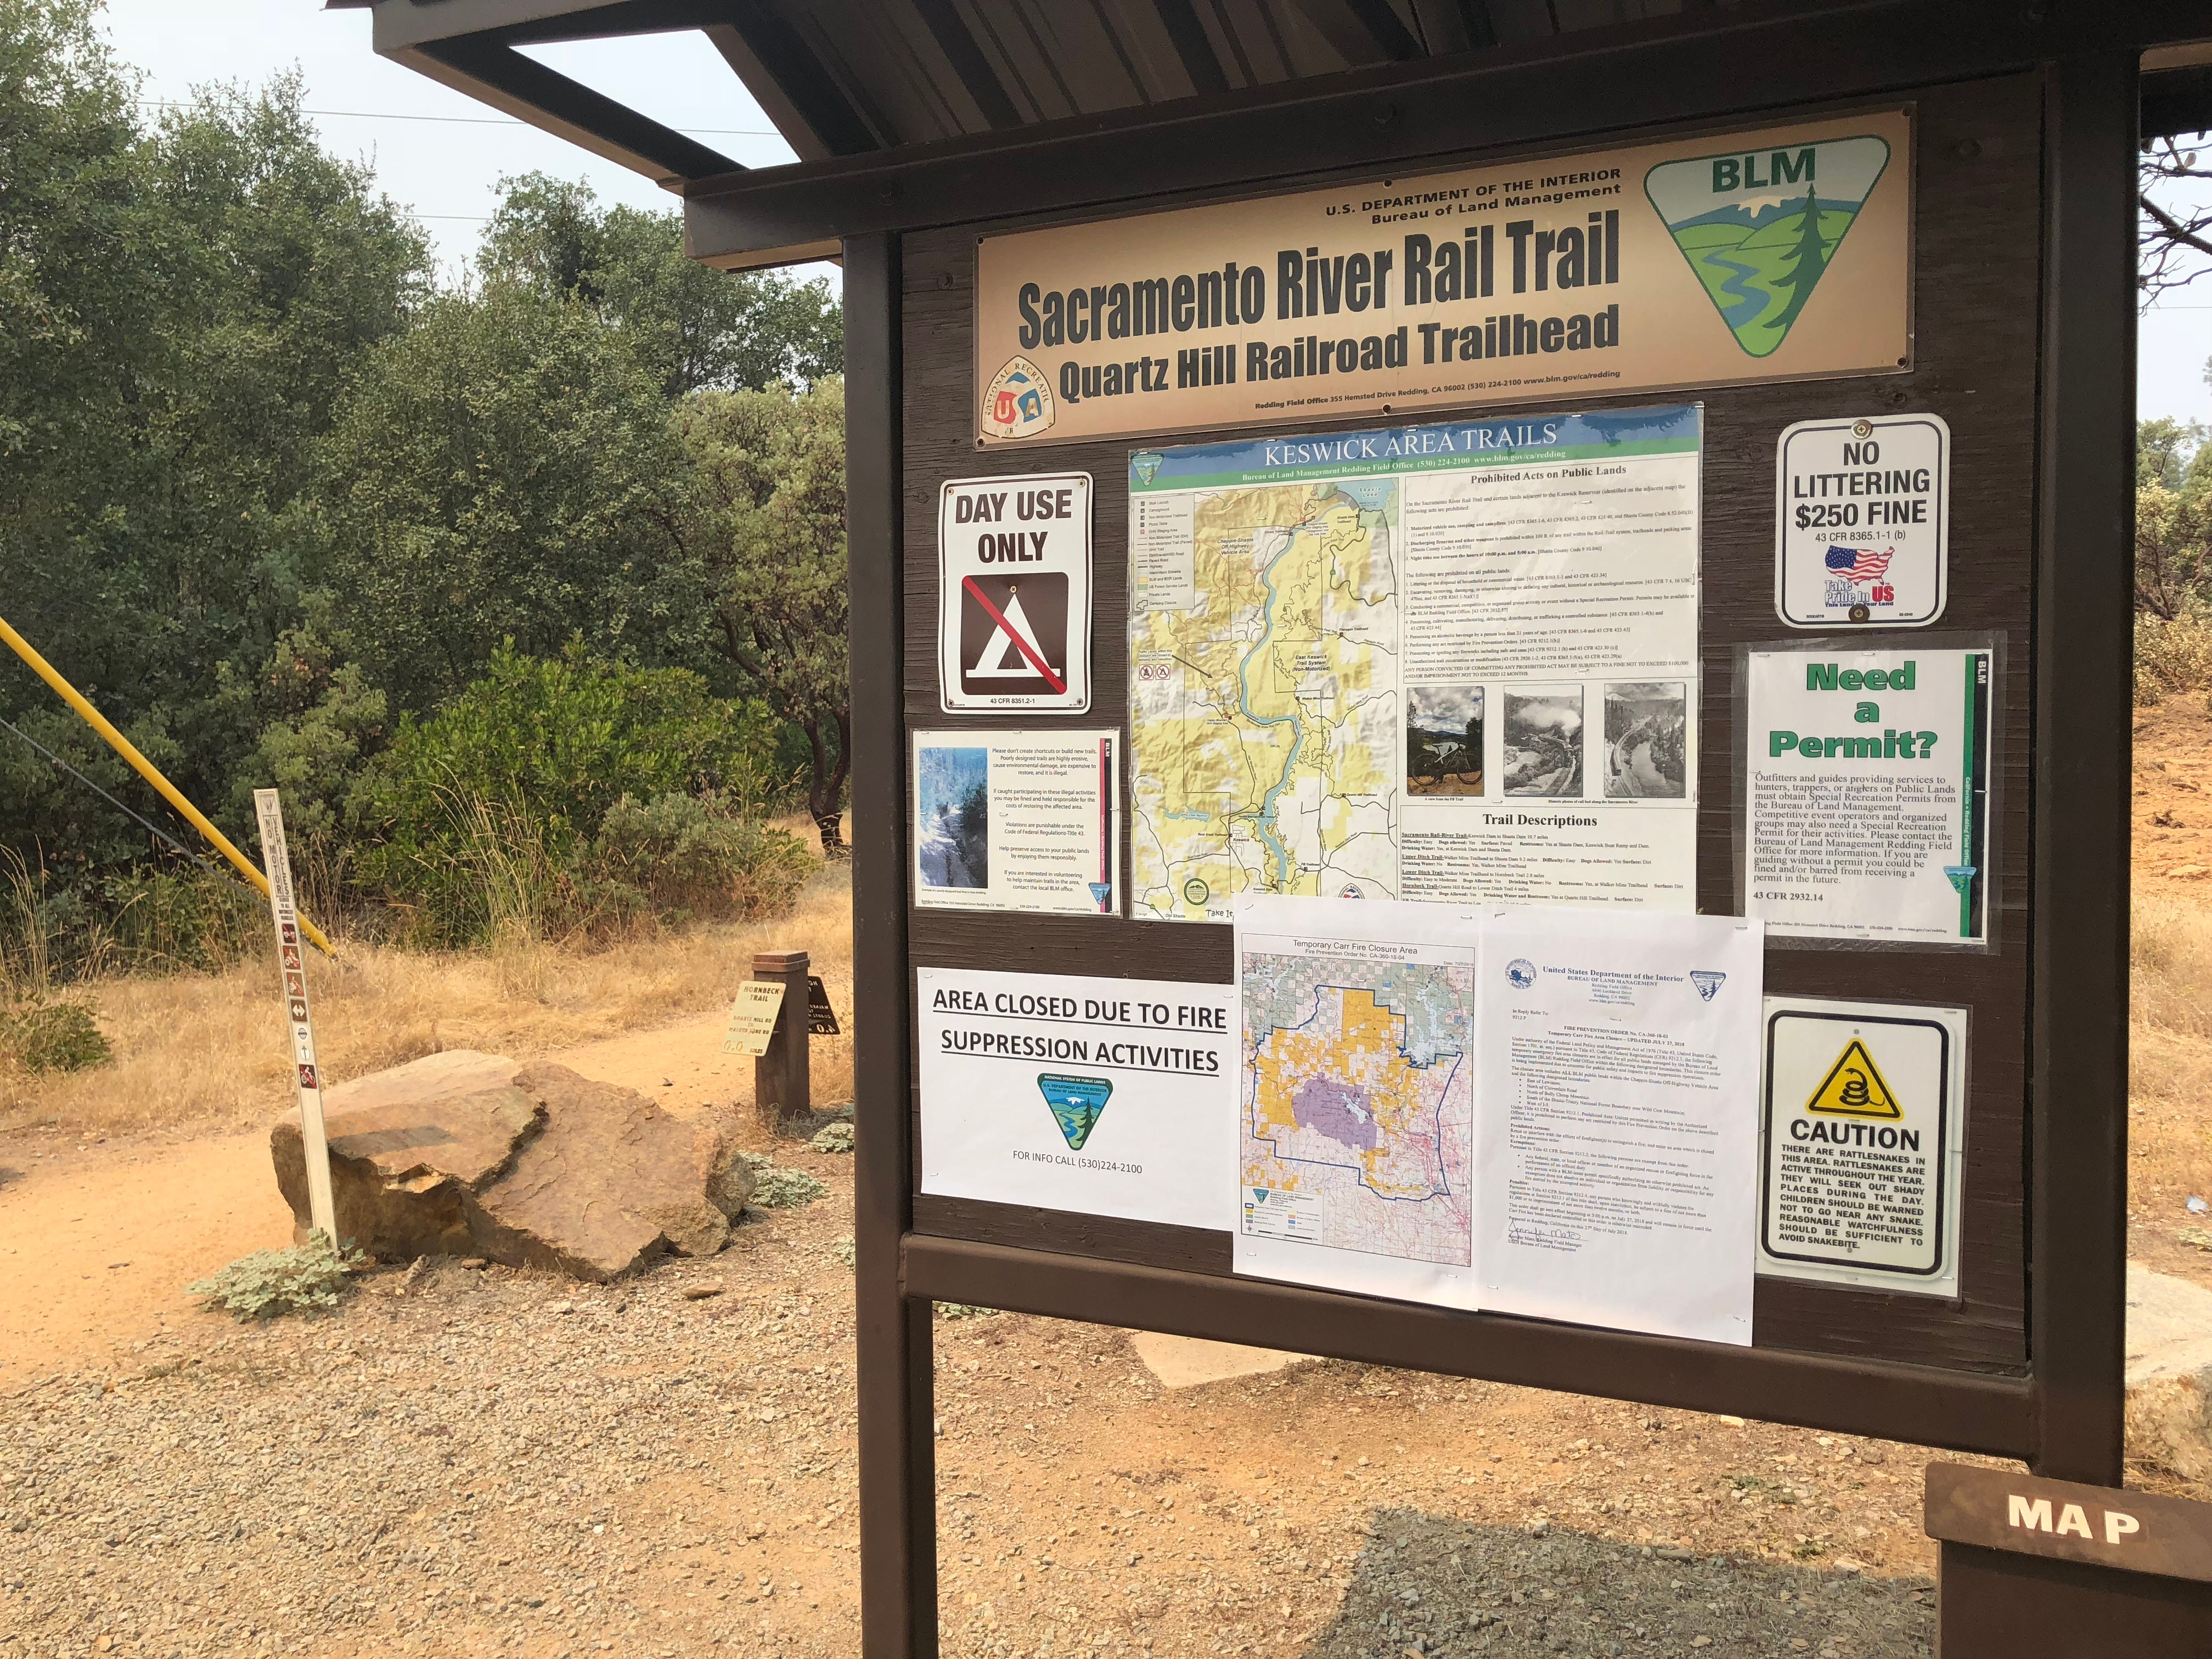 The beginning of the Hornbeck Trail, by the Quartz Hill Railroad Trailhead, appears largely undamaged by the Carr Fire. Although the area is still inaccessible to the public, the air is not very smoky and the water fountain is in working order.